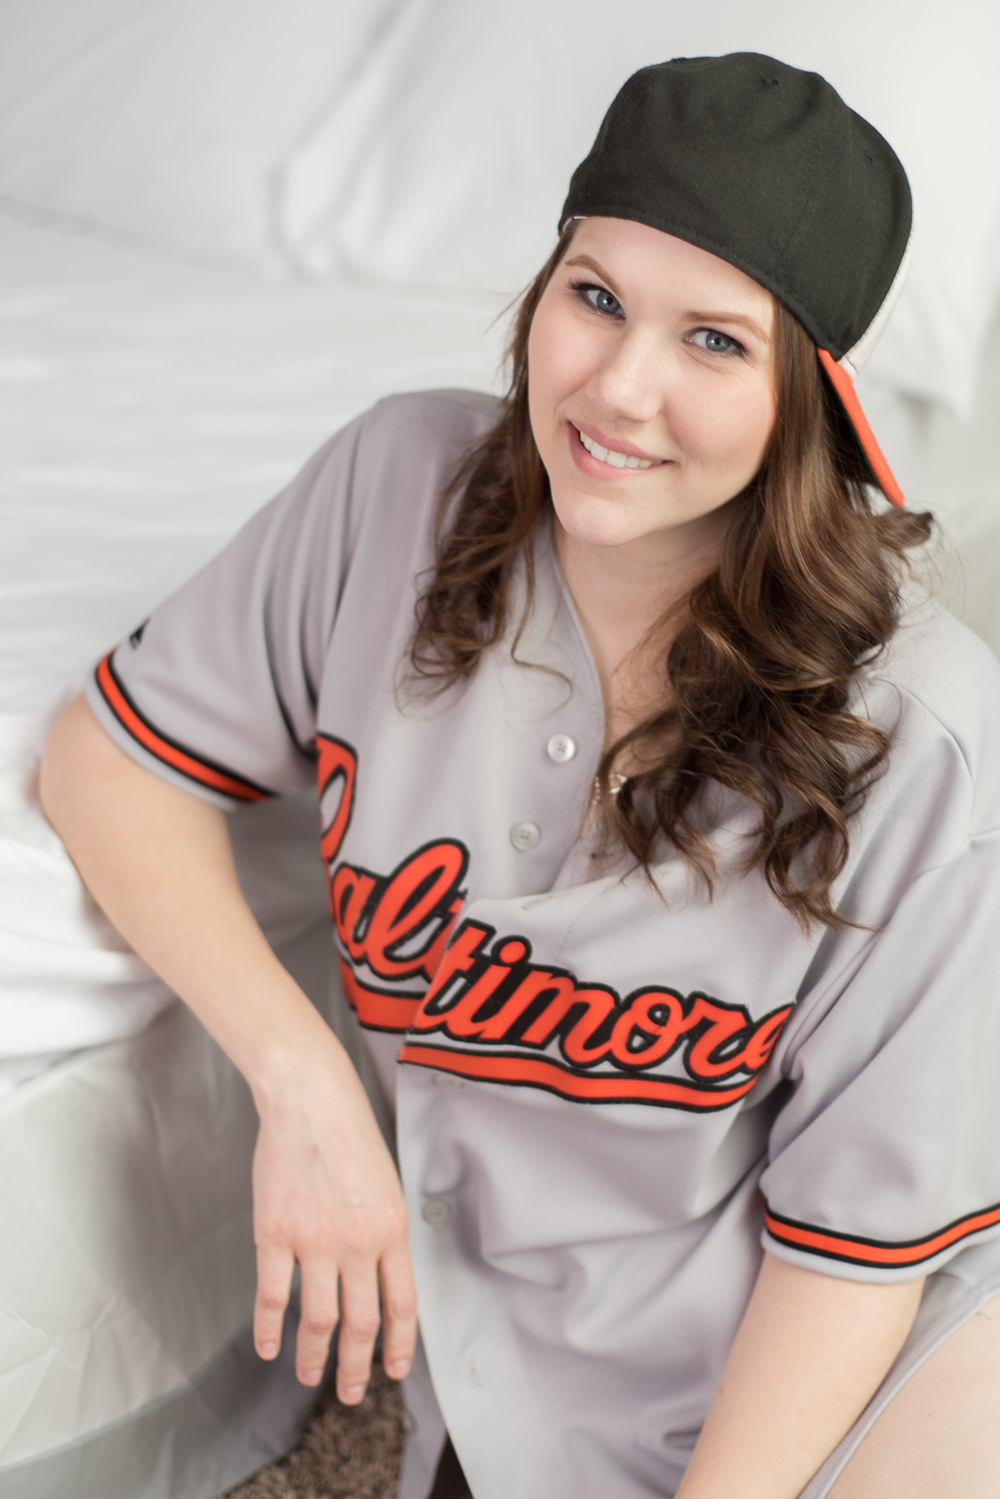 Boudoir photographer near Nashville, TN - Sports theme - D. Phillips Photography